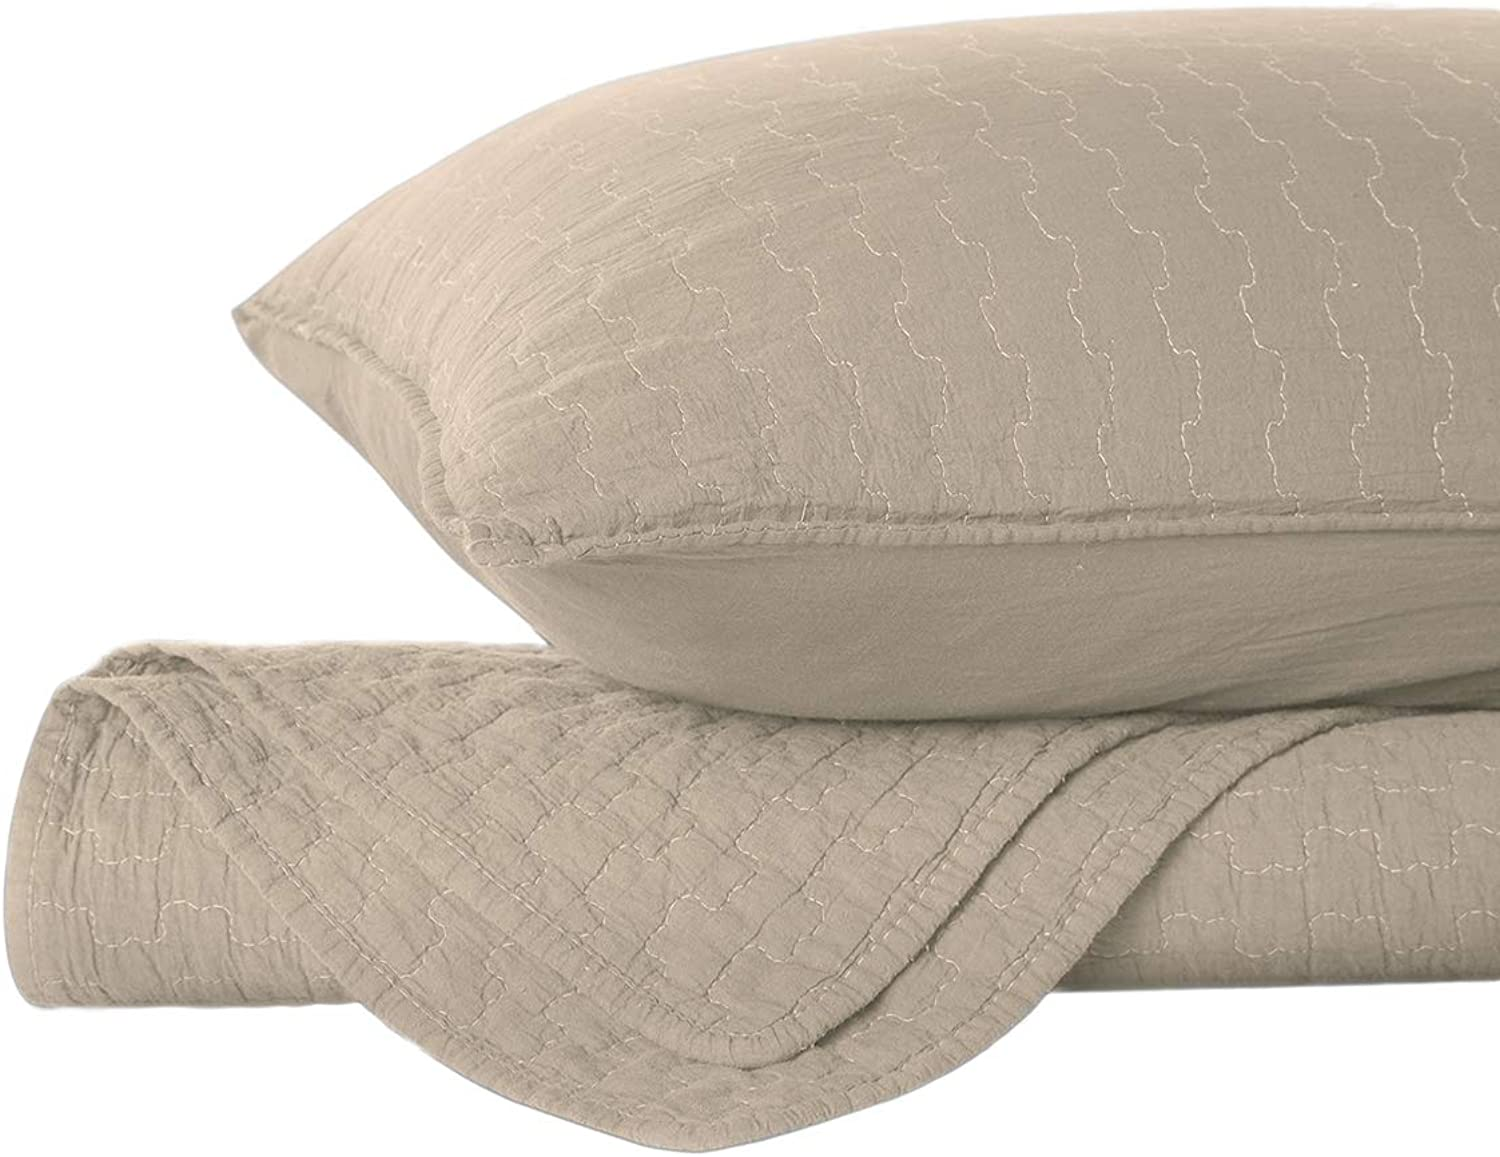 HollyHOME Super Soft Coverlet 3 Piece King Size Stone Washed Linen Blanket Set, Taupe